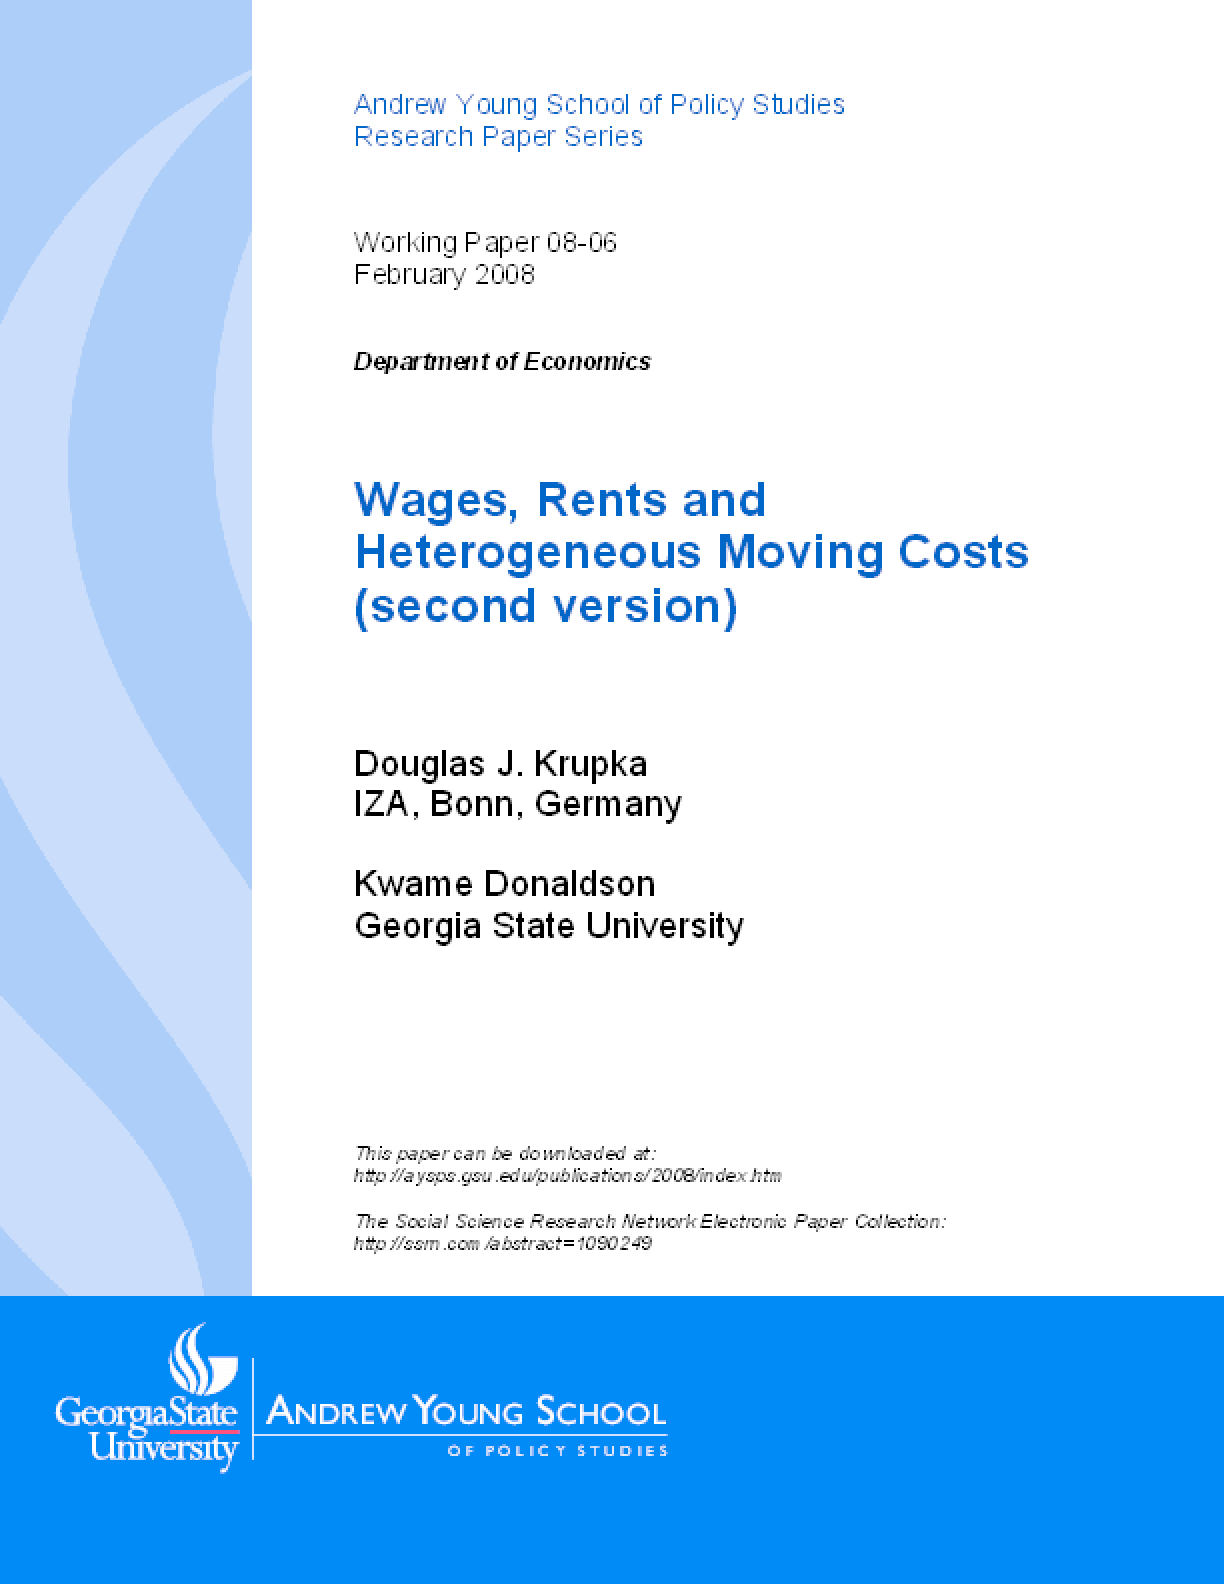 Wages, Rents and Heterogeneous Moving Costs (second version)